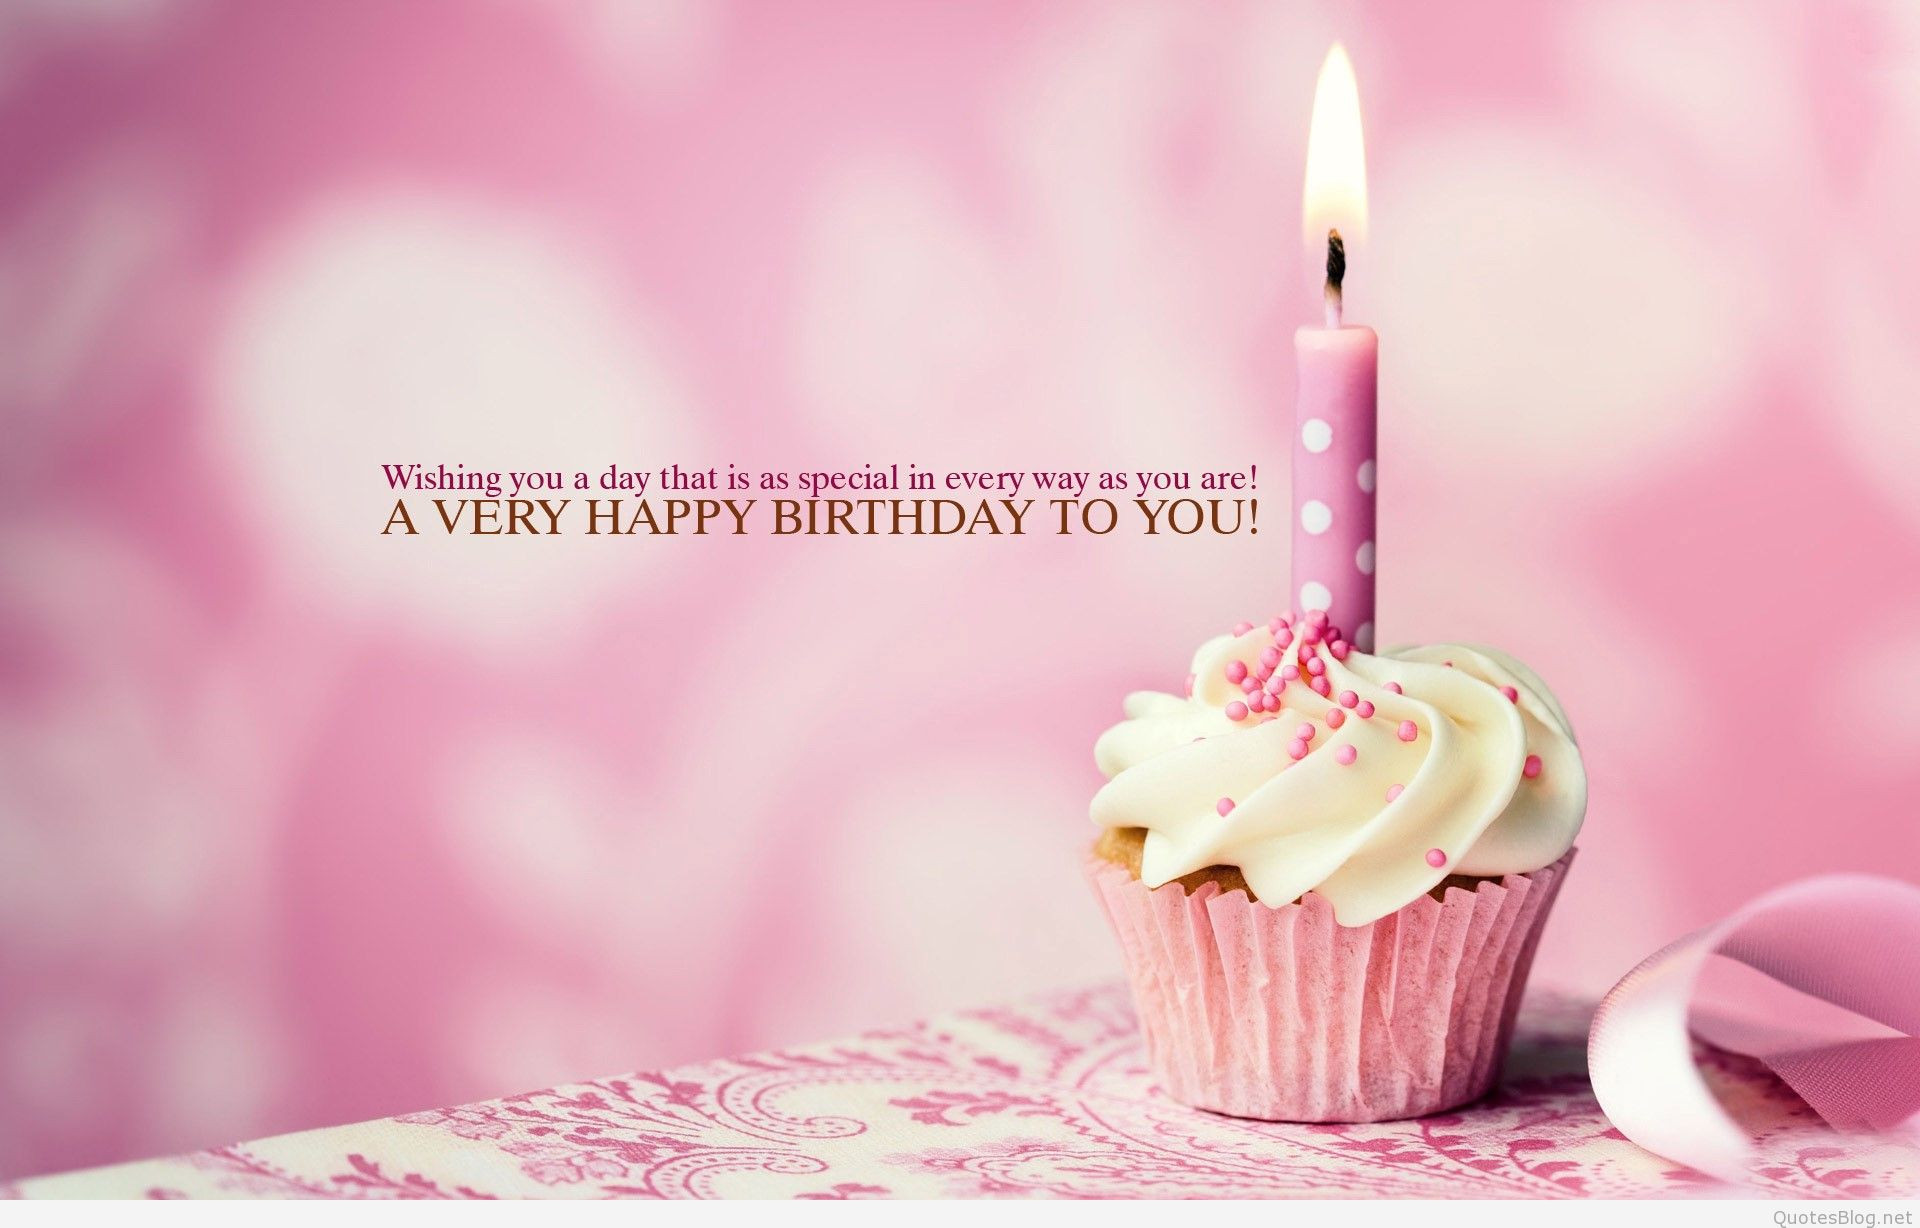 Birthday Wish Quotes  2015 Happy birthday quotes and sayings on images